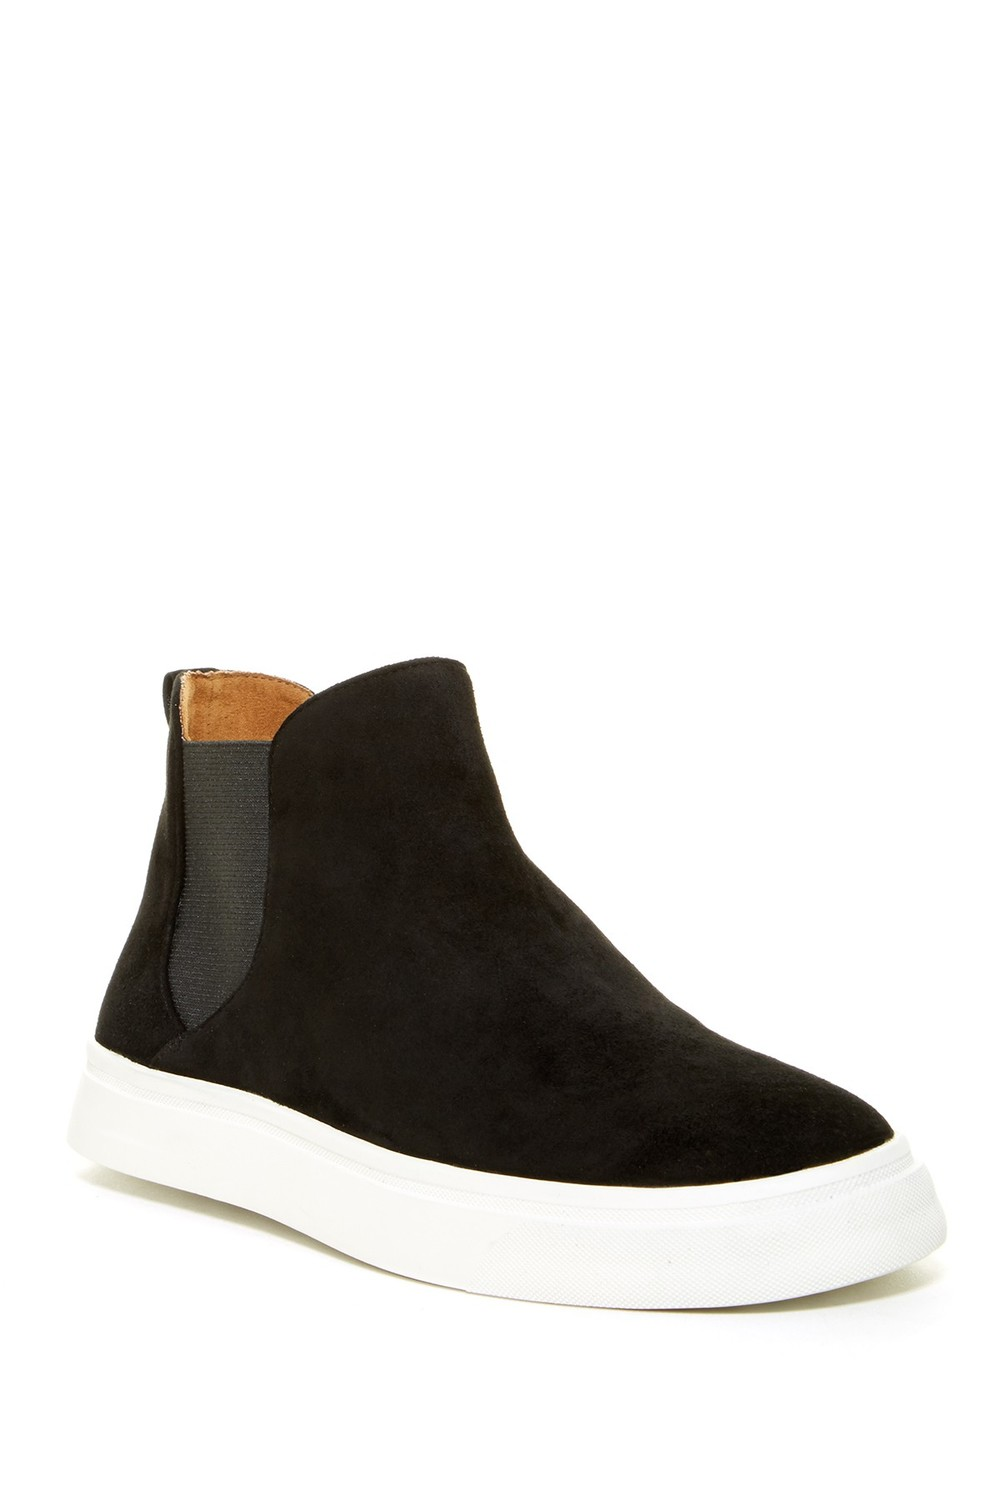 14th & Union Joy High Top Pull On Sneaker. Available in multiple colors. Nordstrom Rack. $59.